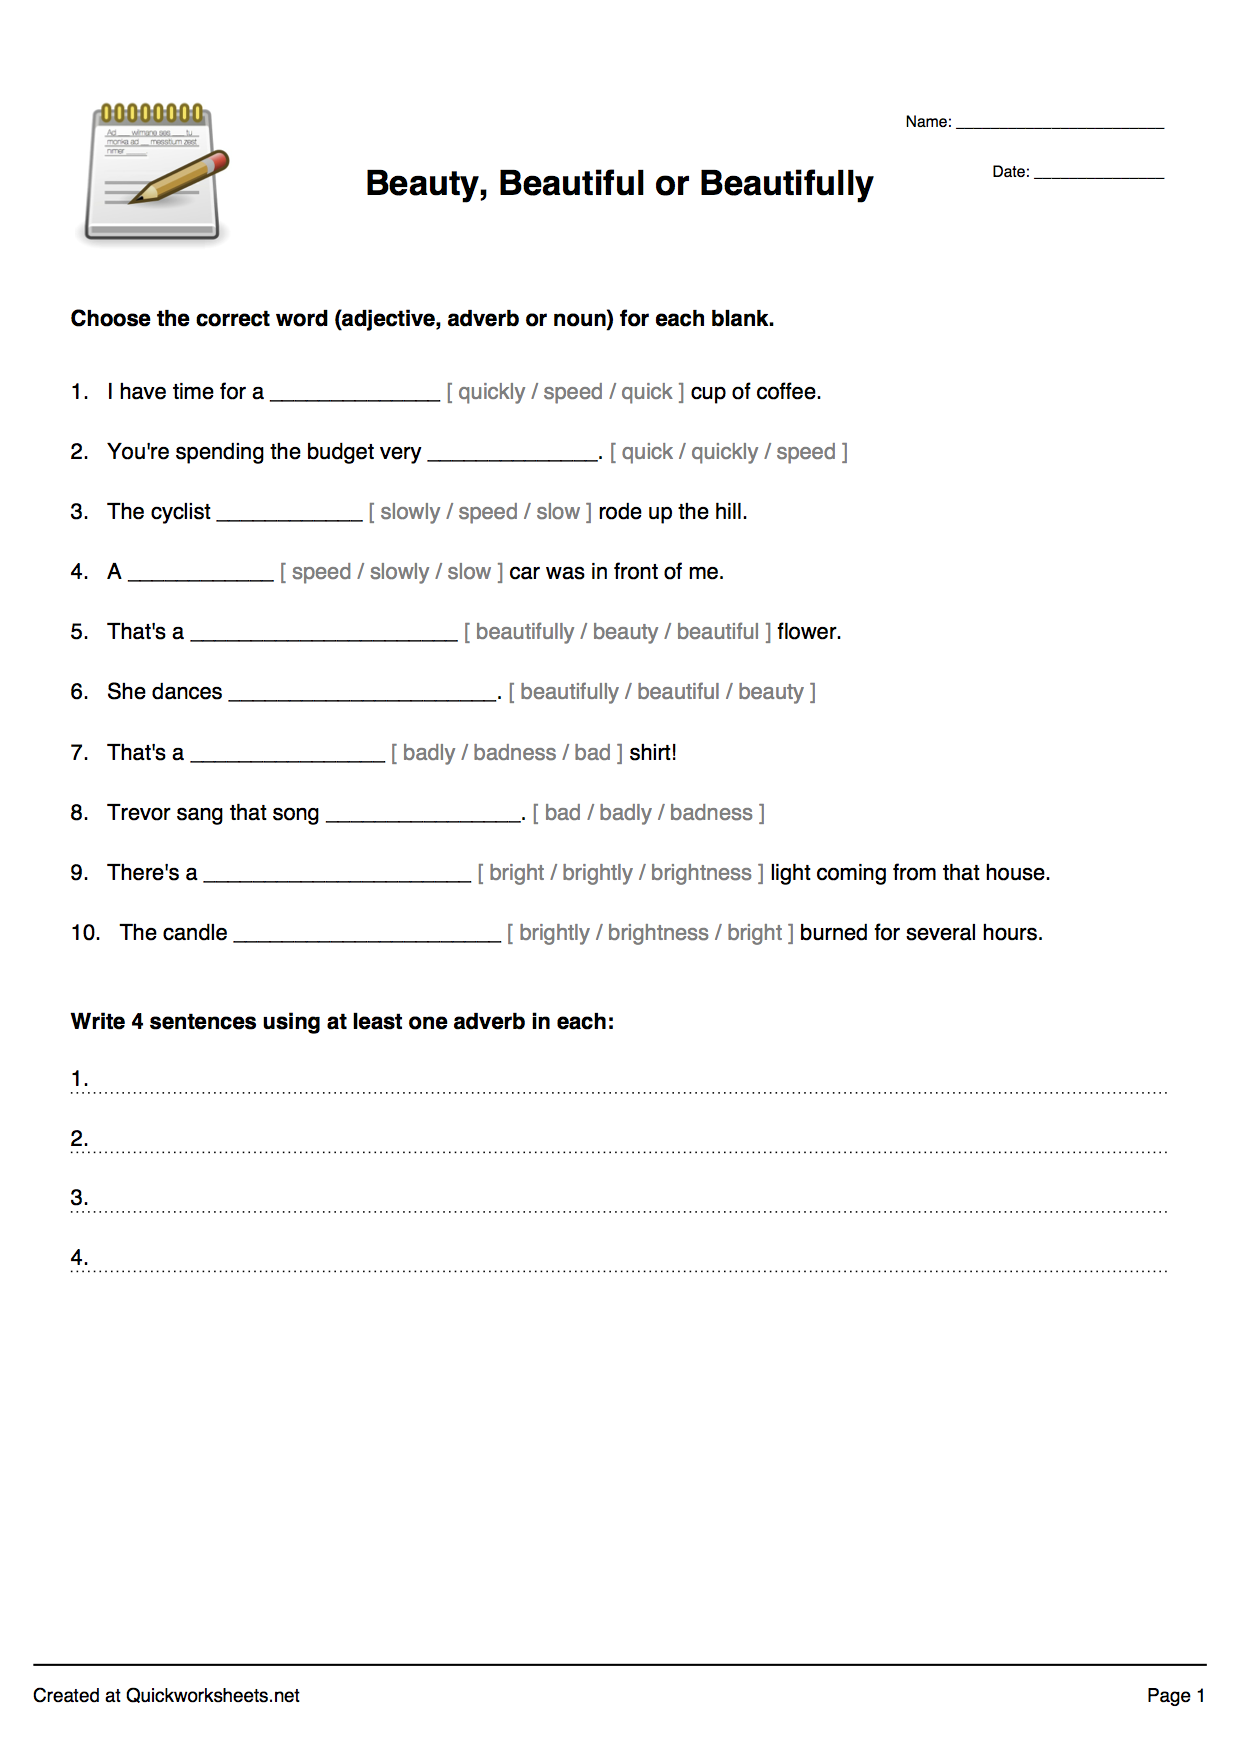 Fill-in-the-Blank Sentences Worksheet Maker